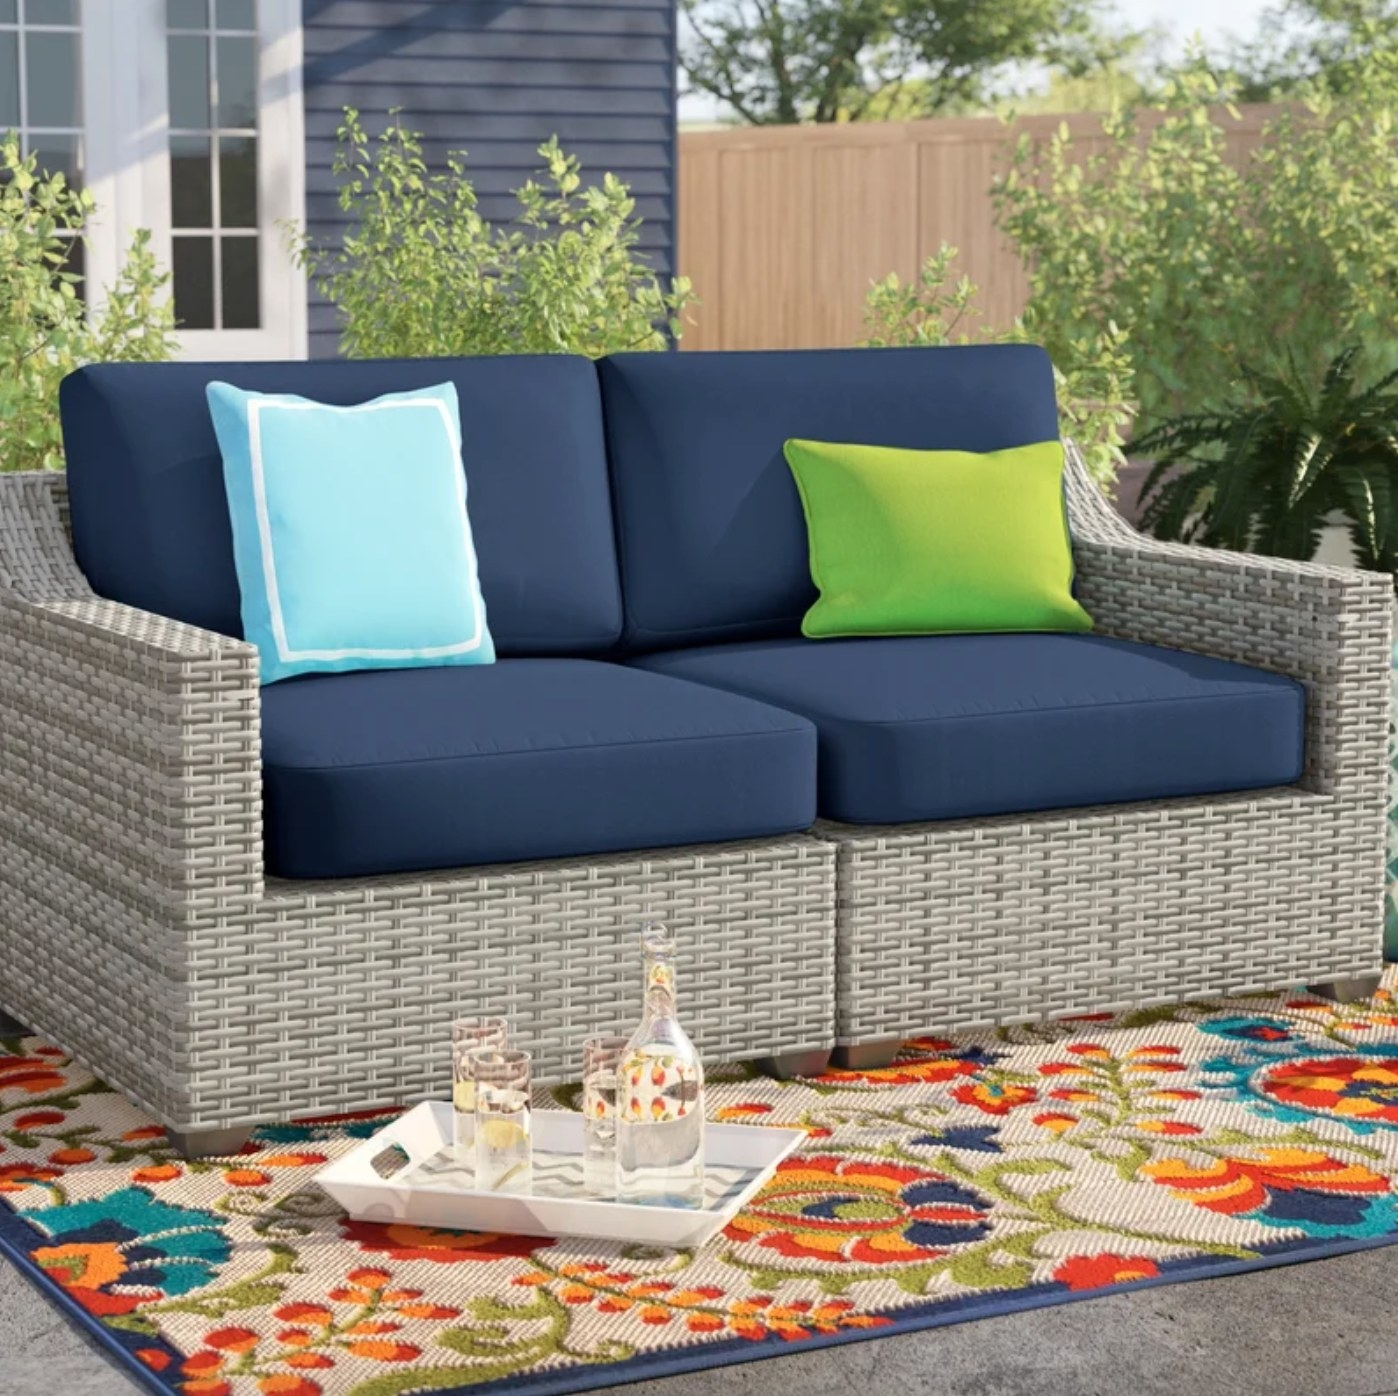 the wide outdoor seat in navy